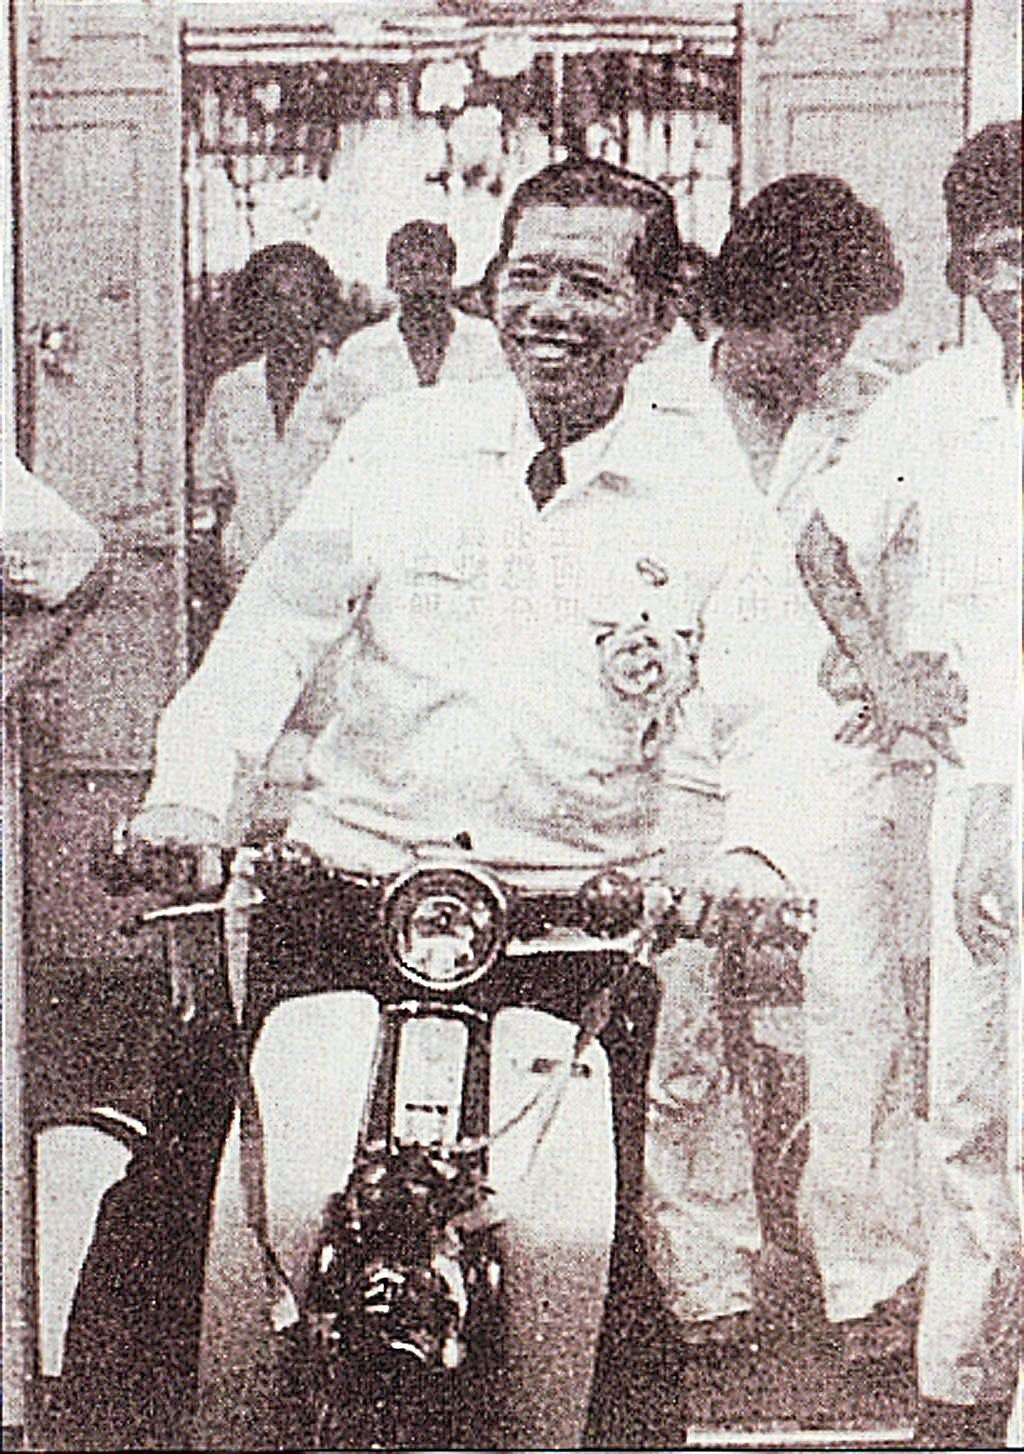 Loh on one of the motorbikes with which he is forever associated. The penniless arrival became an entrepreneur who contributed greatly to society. — Filepic/The Star